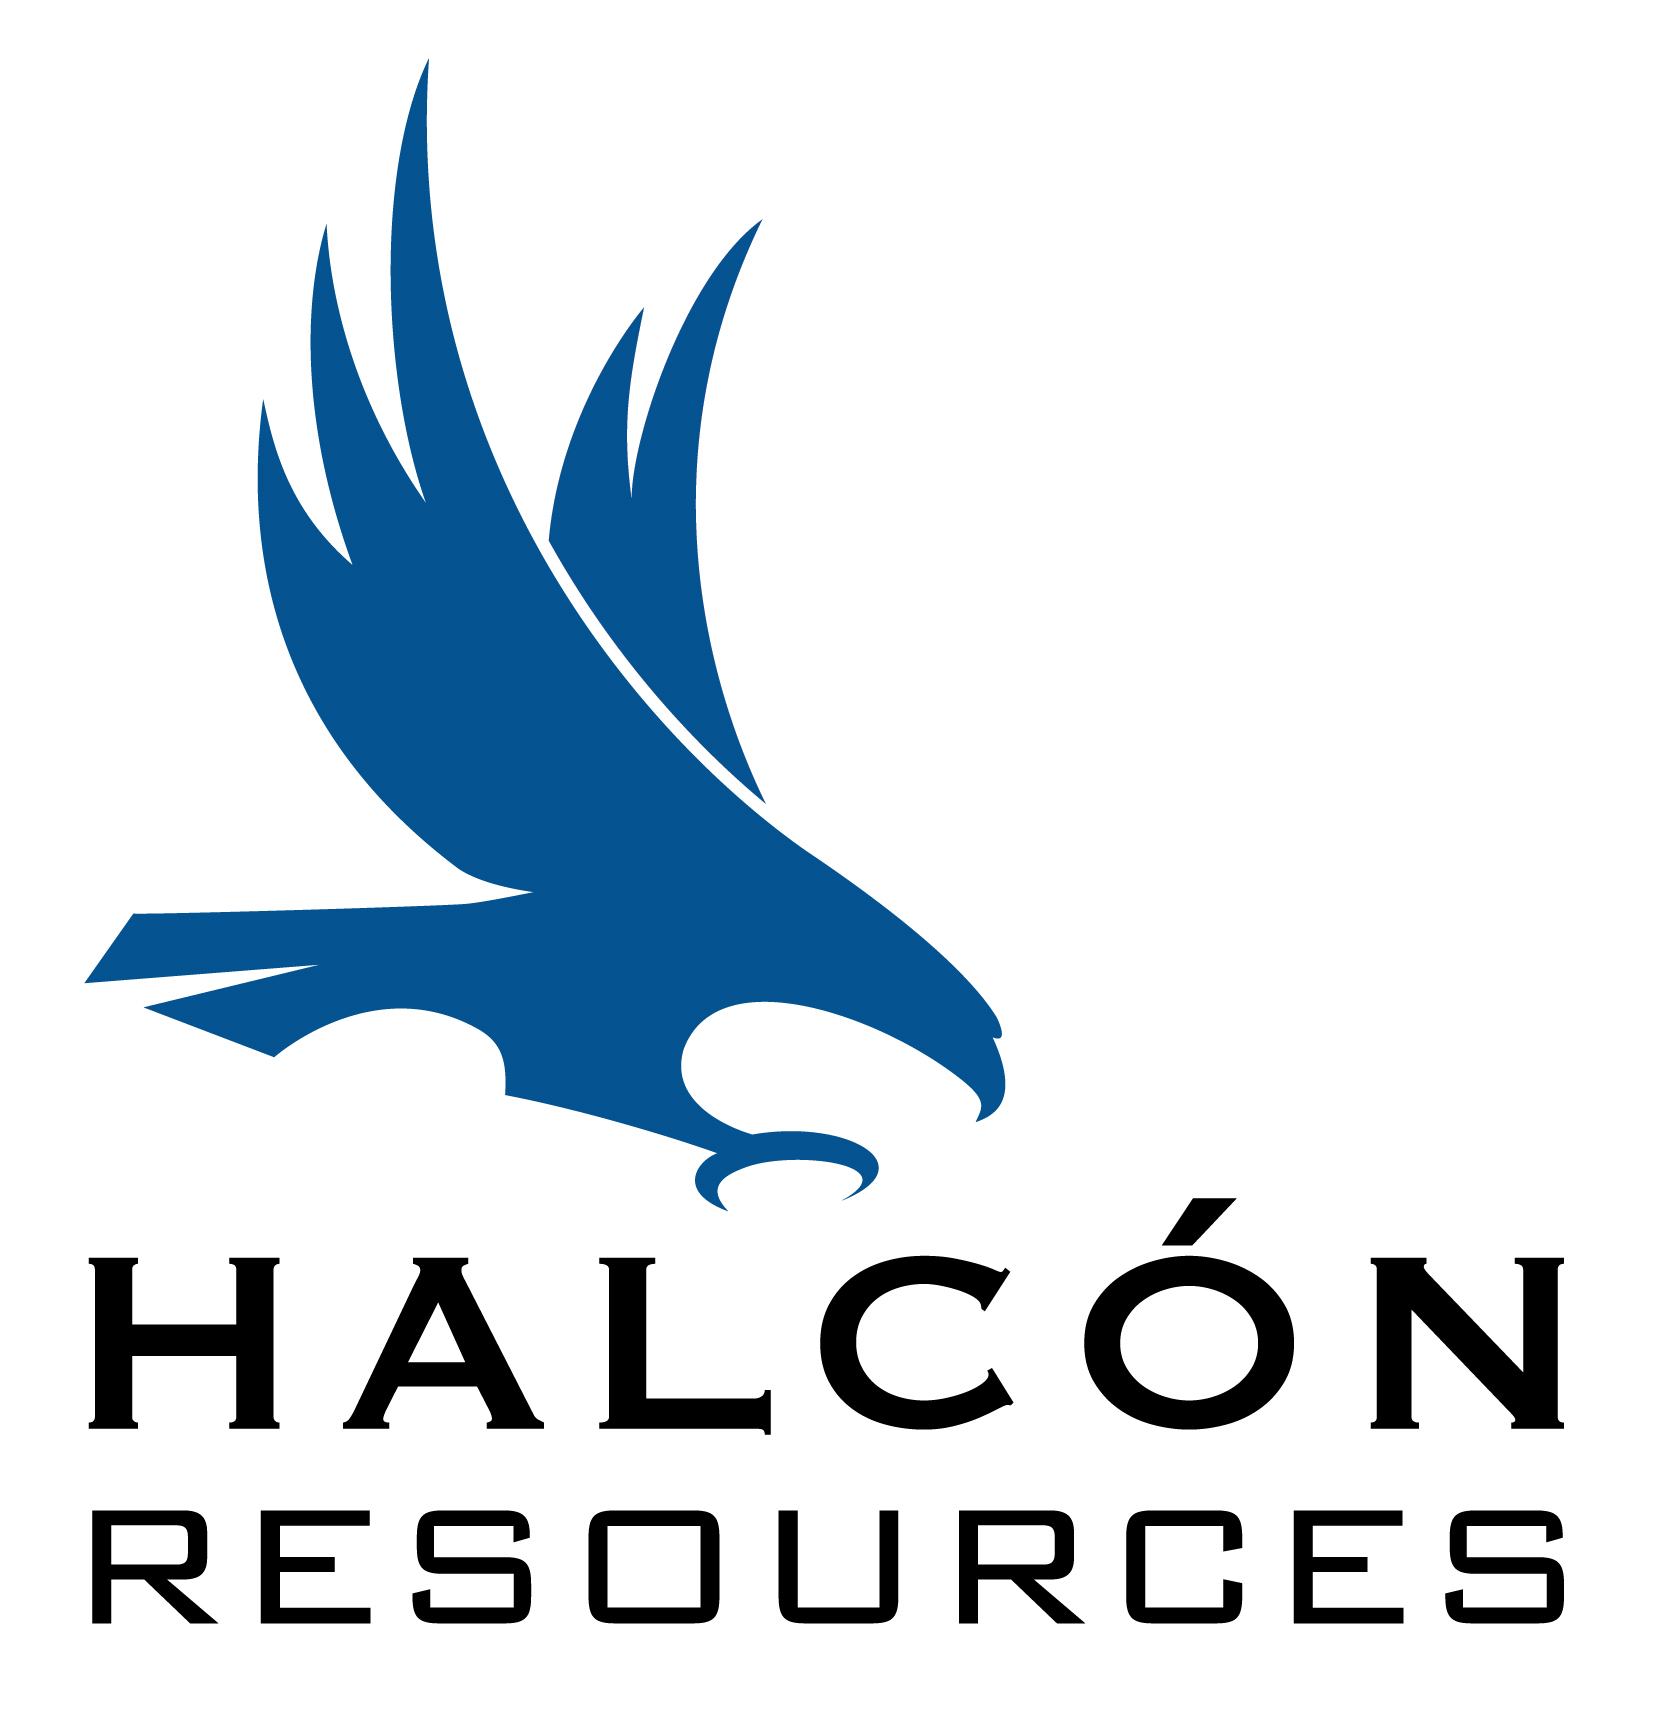 Halcón Resources Announces Fourth Quarter 2018 Results and Provides an Update on Operations and Other Activities